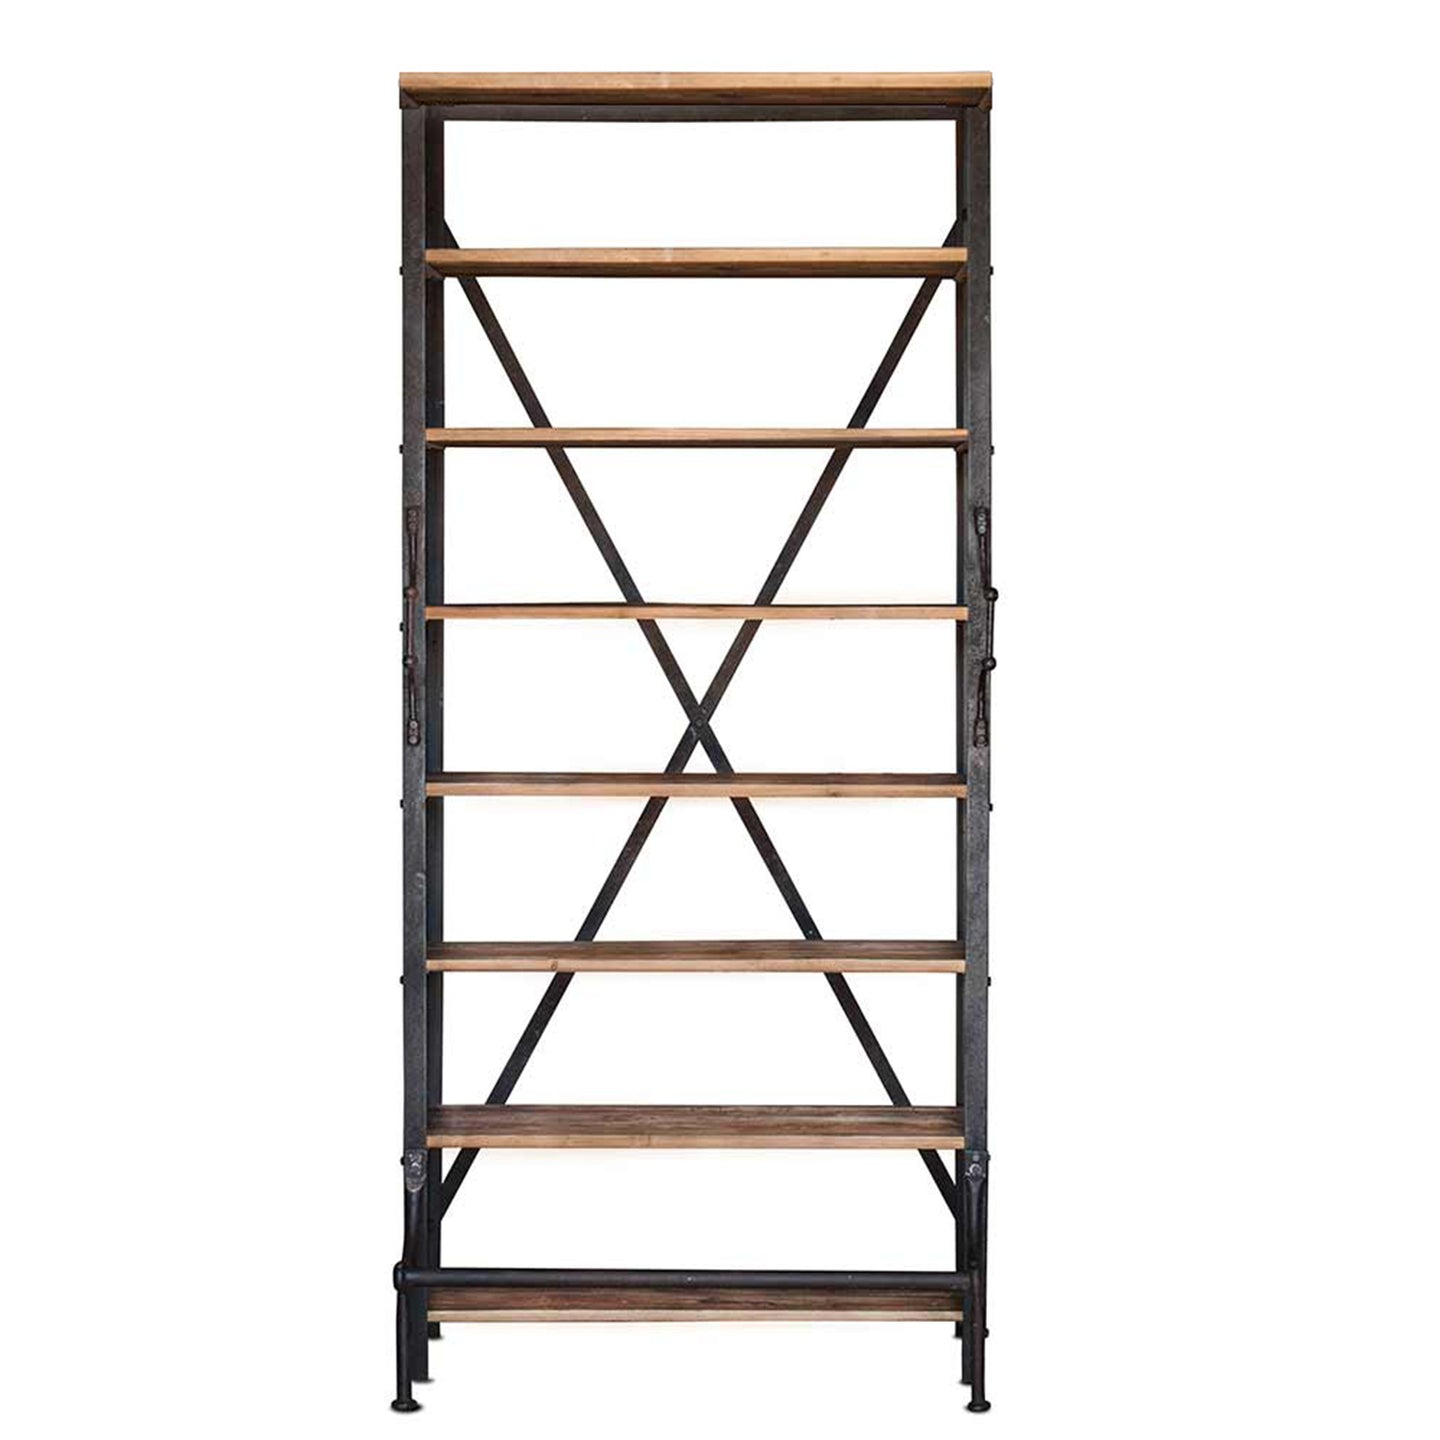 CUMBERLAND RECLAIMED SHELVES